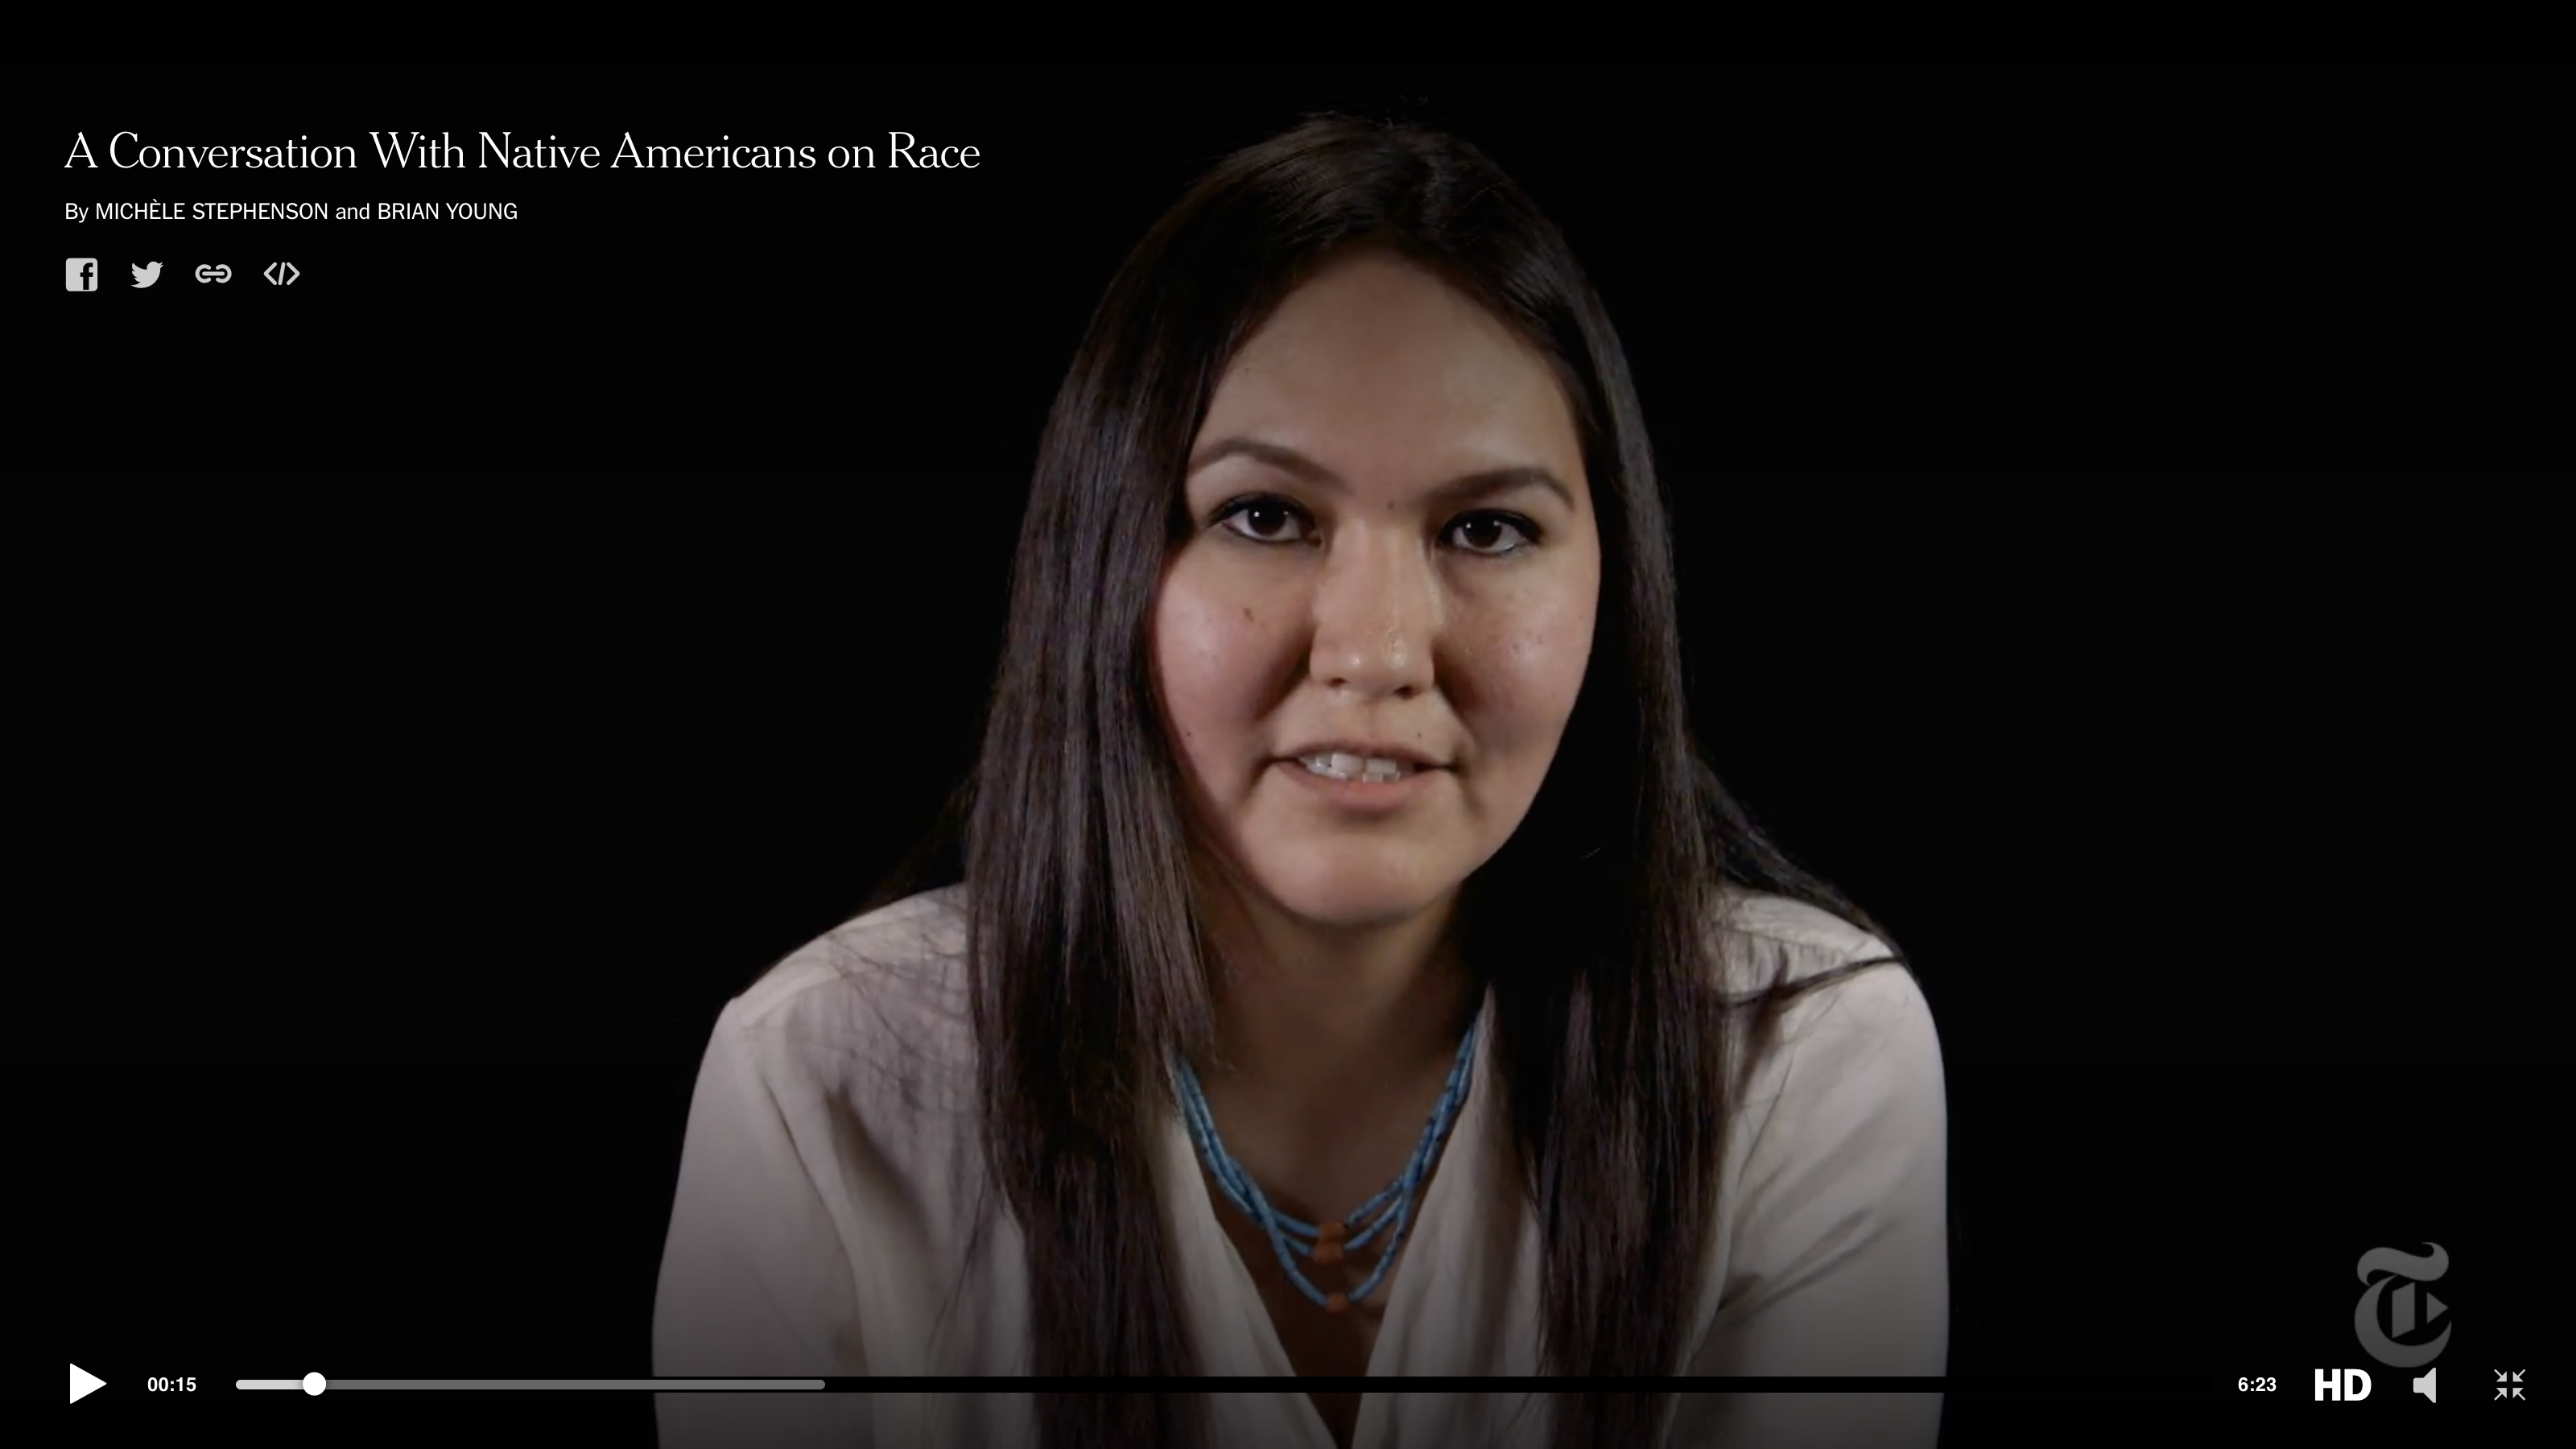 New York Times turns to Native Americans for Conversation on Race project